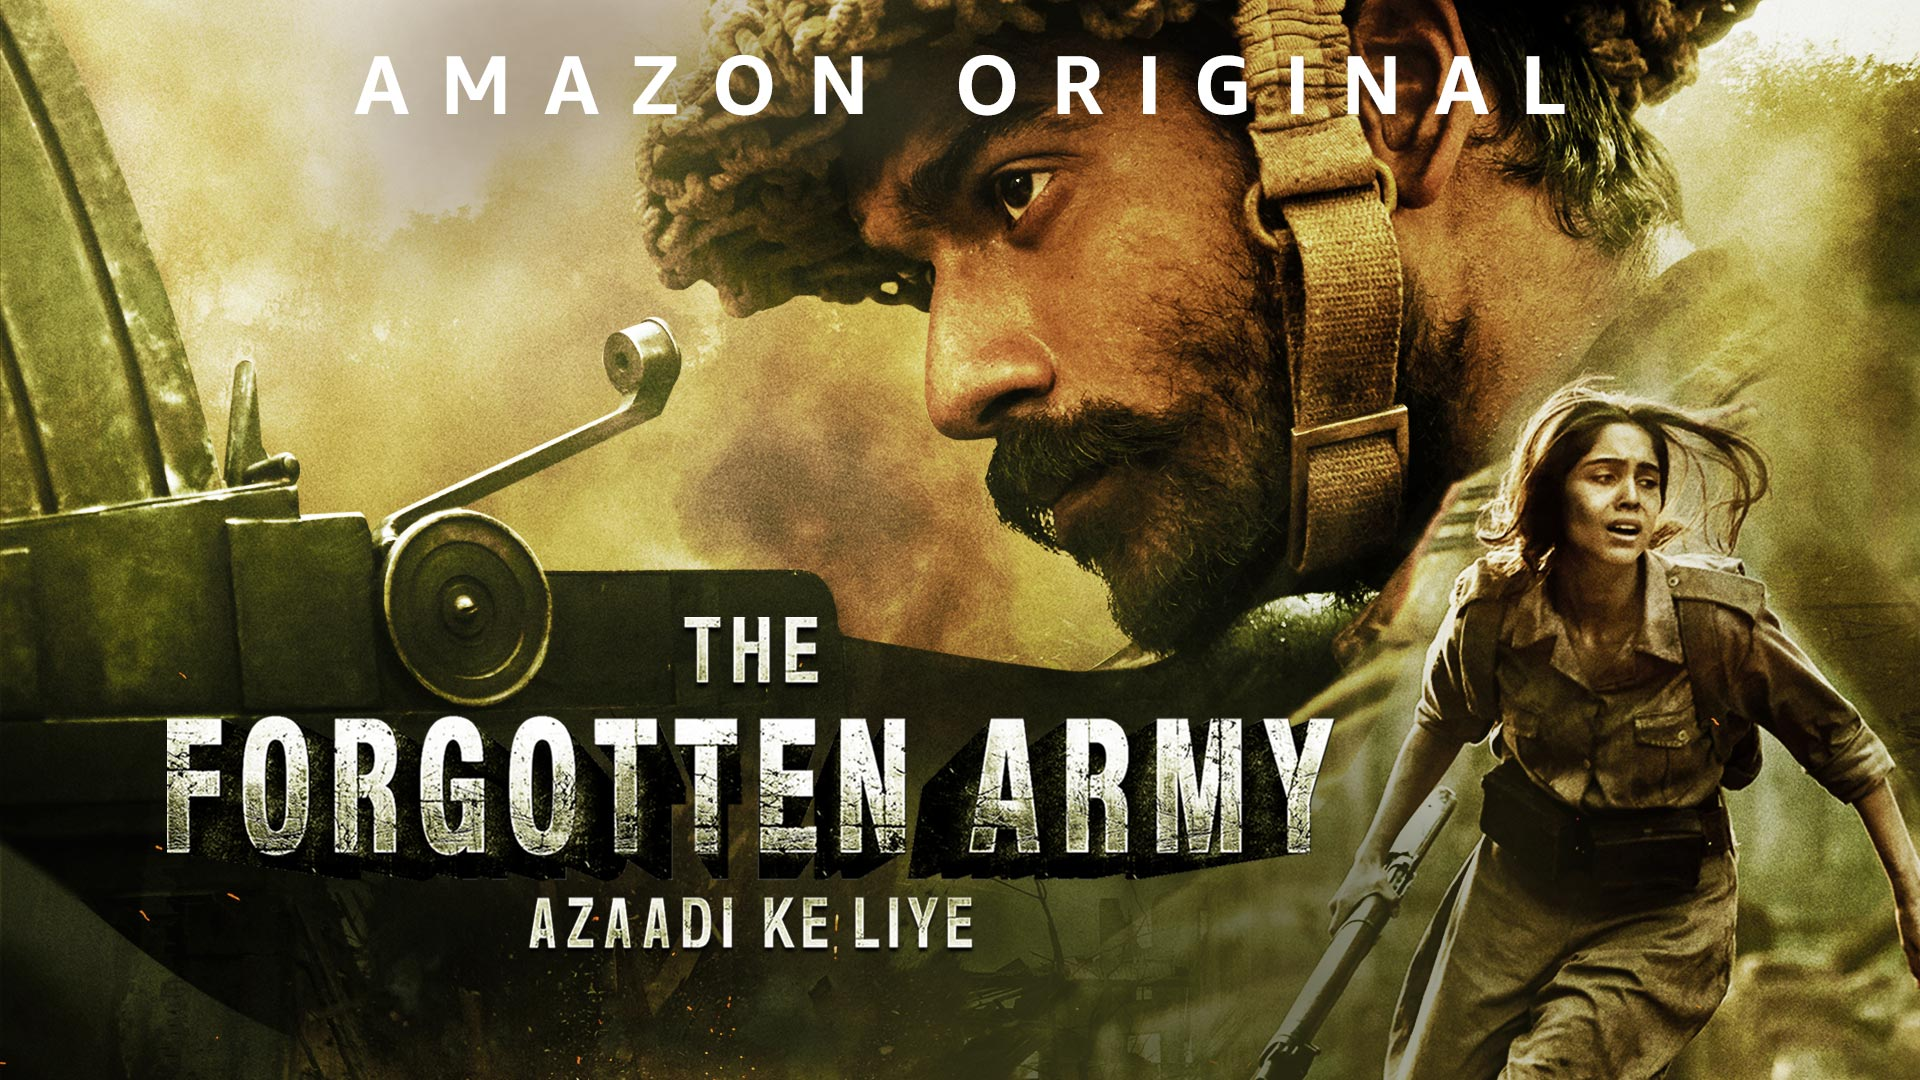 The Forgotten Army - Azaadi ke liye - Season 1